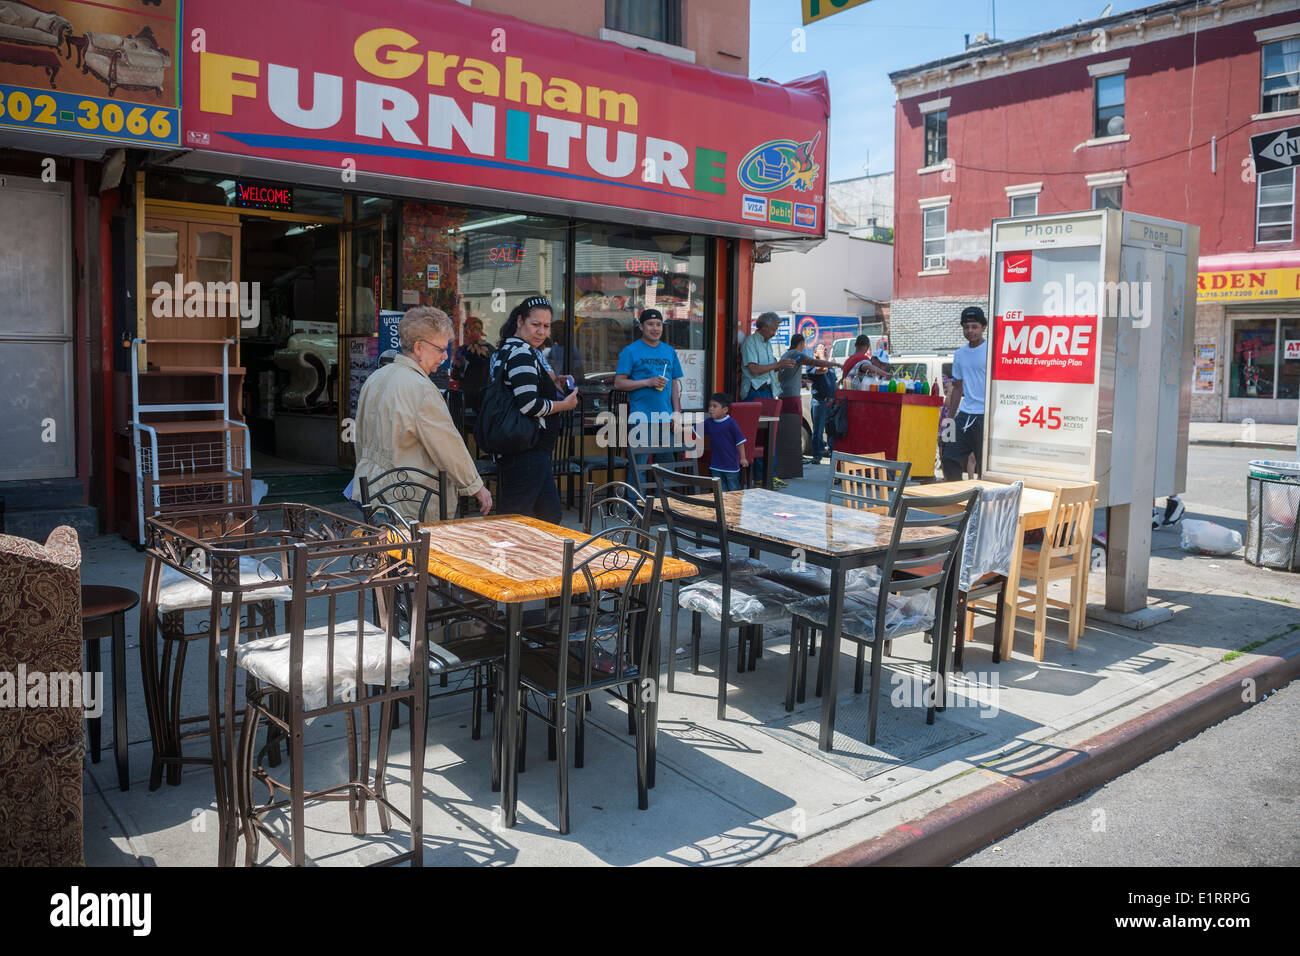 Furniture Store On Busy Graham Avenue In The Bushwick Neighborhood